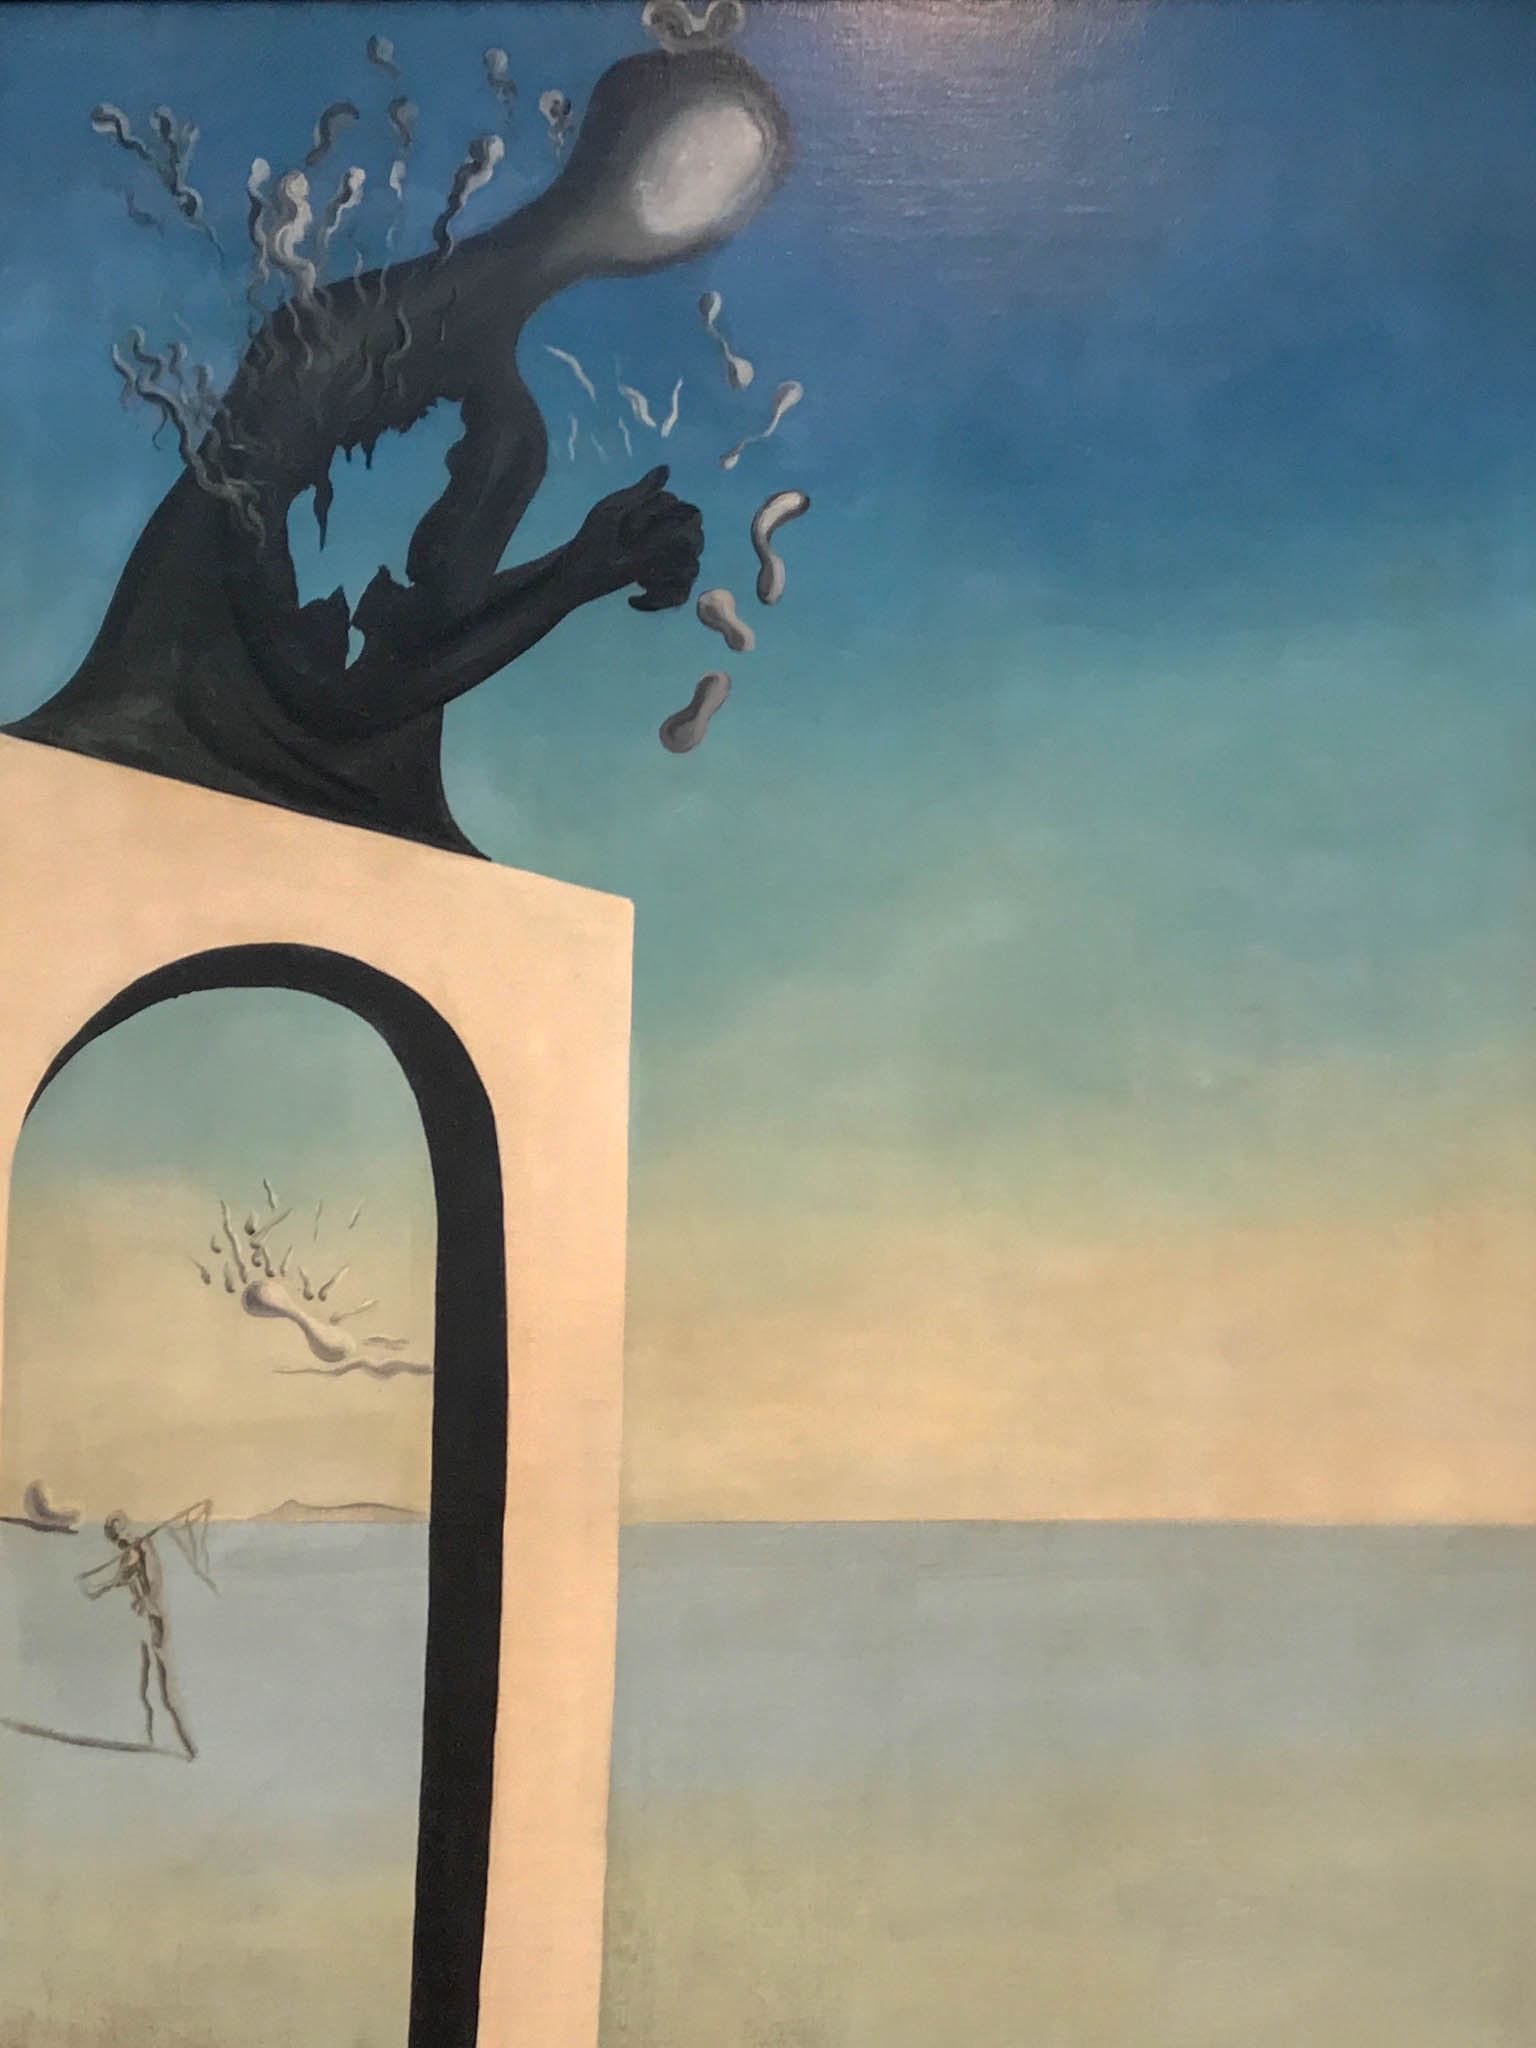 Salvador Dalí: Visions of Eternity